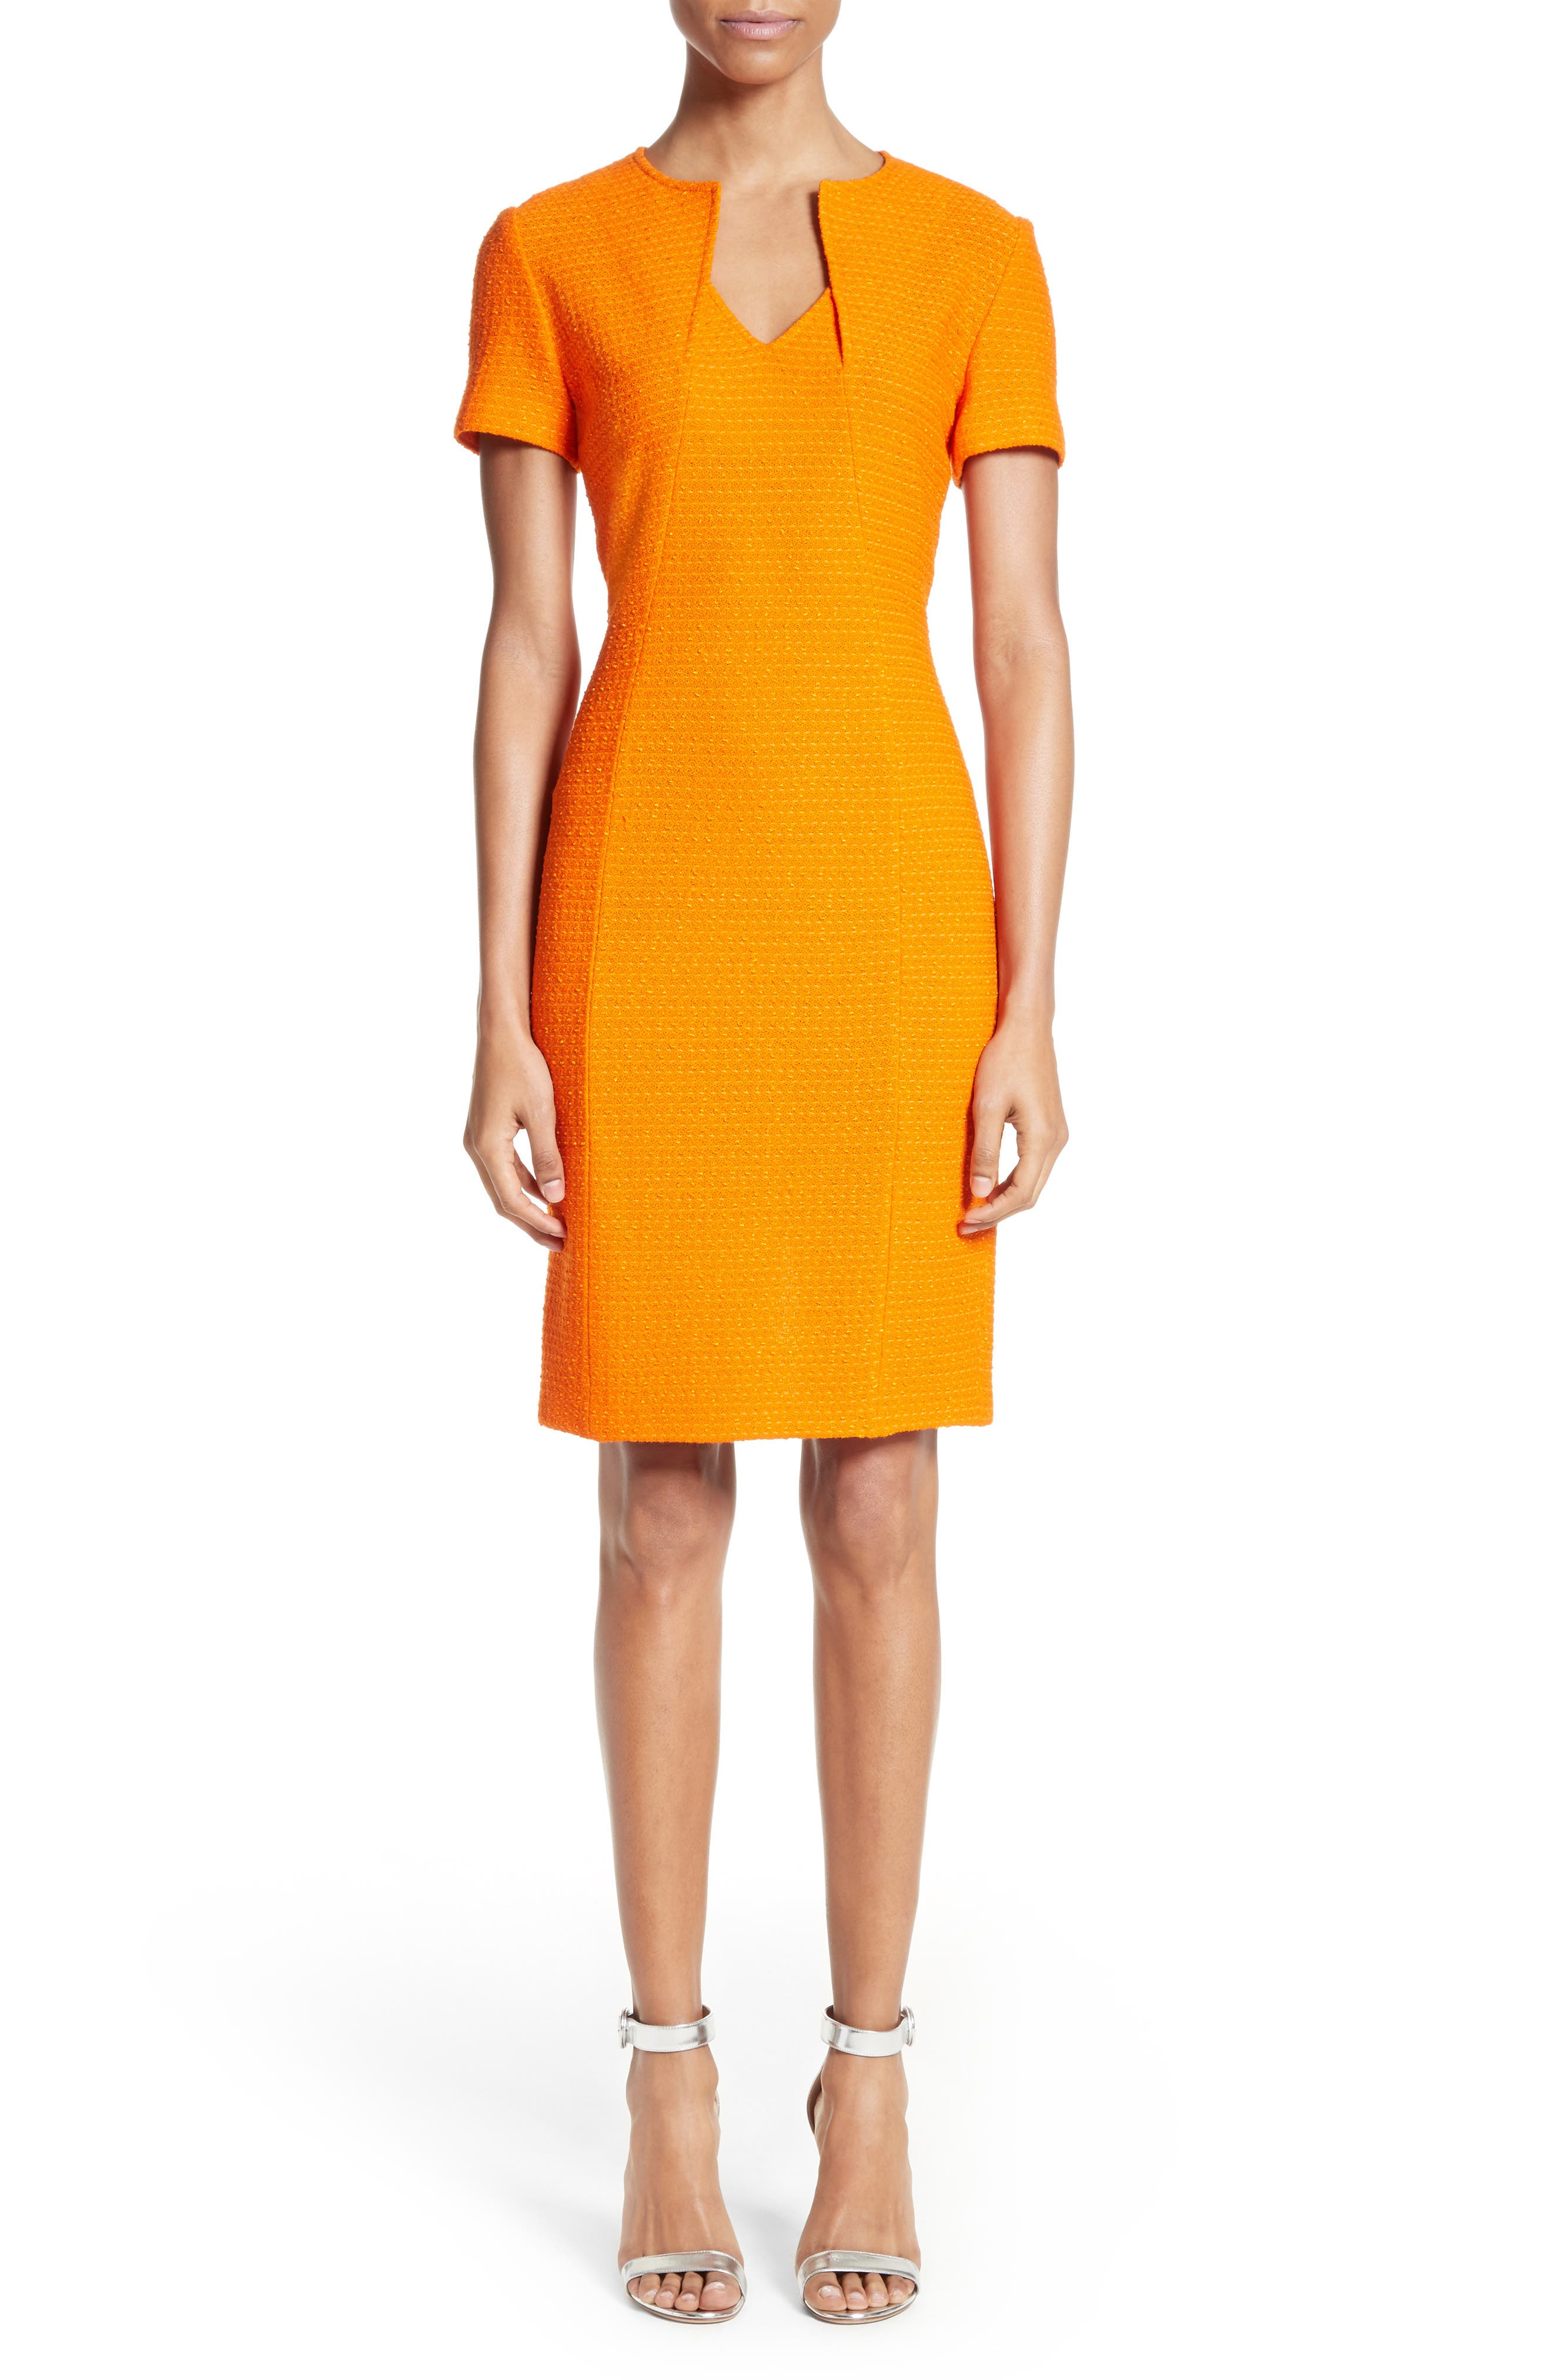 Alternate Image 1 Selected - St. John Collection Ribbon Texture Knit Dress